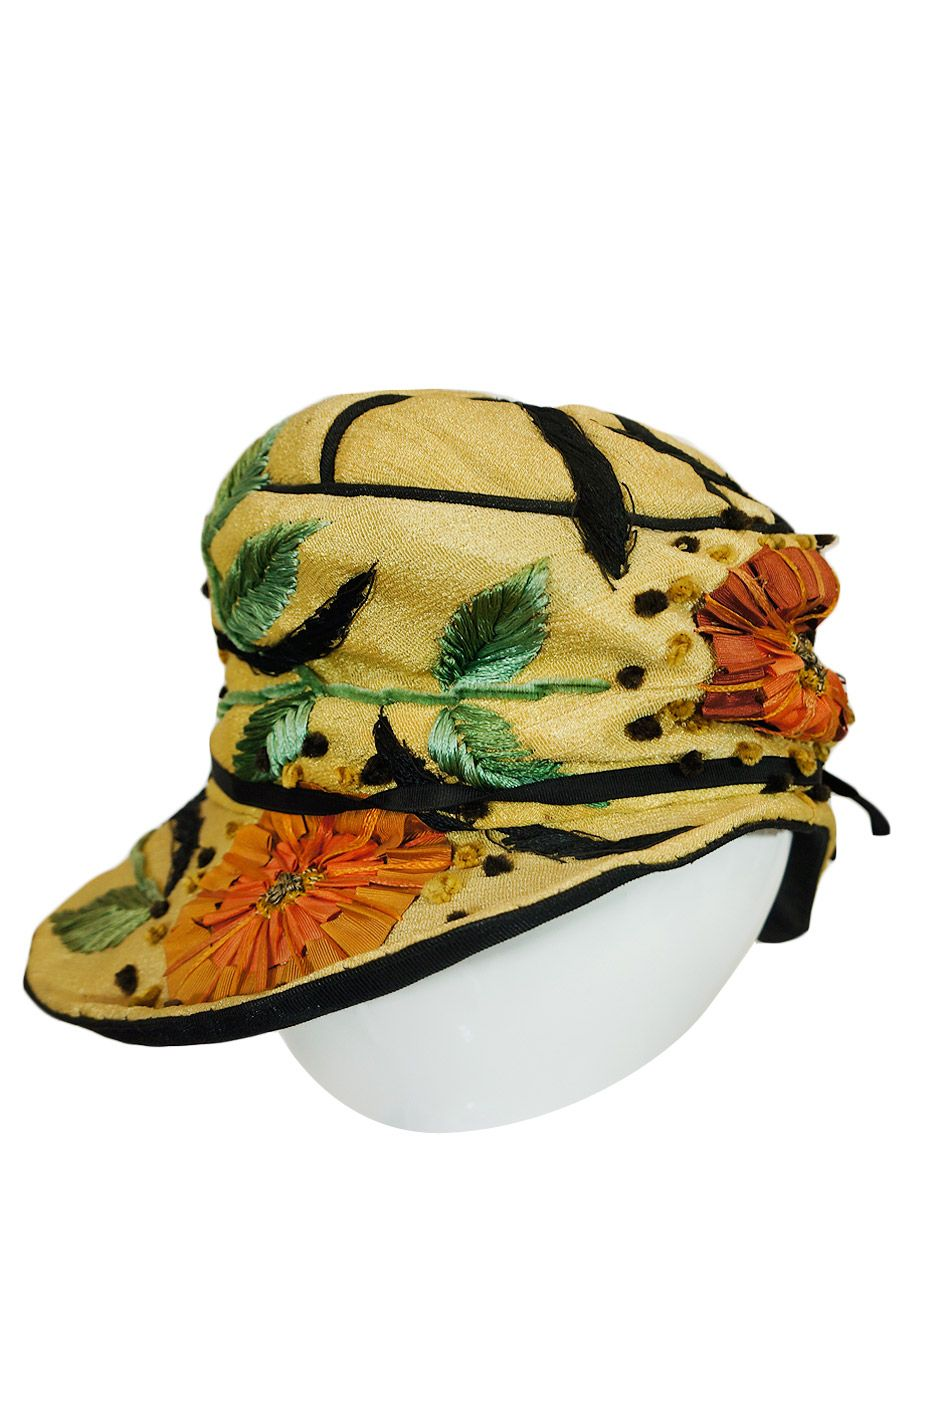 Edwardian embroidered hat